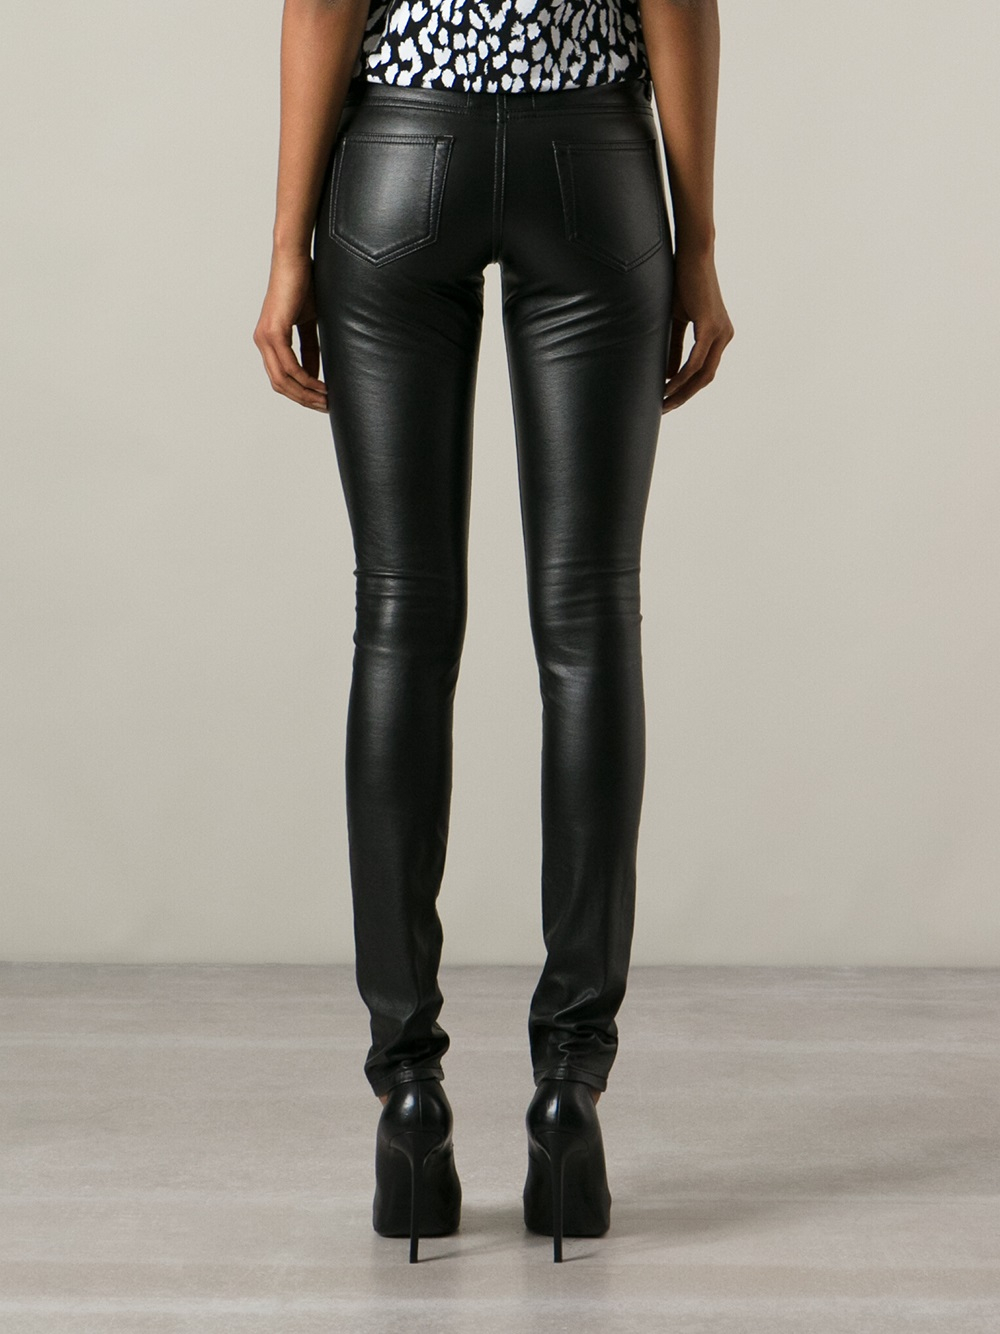 Saint laurent Eco Leather Skinny Jeans in Black | Lyst